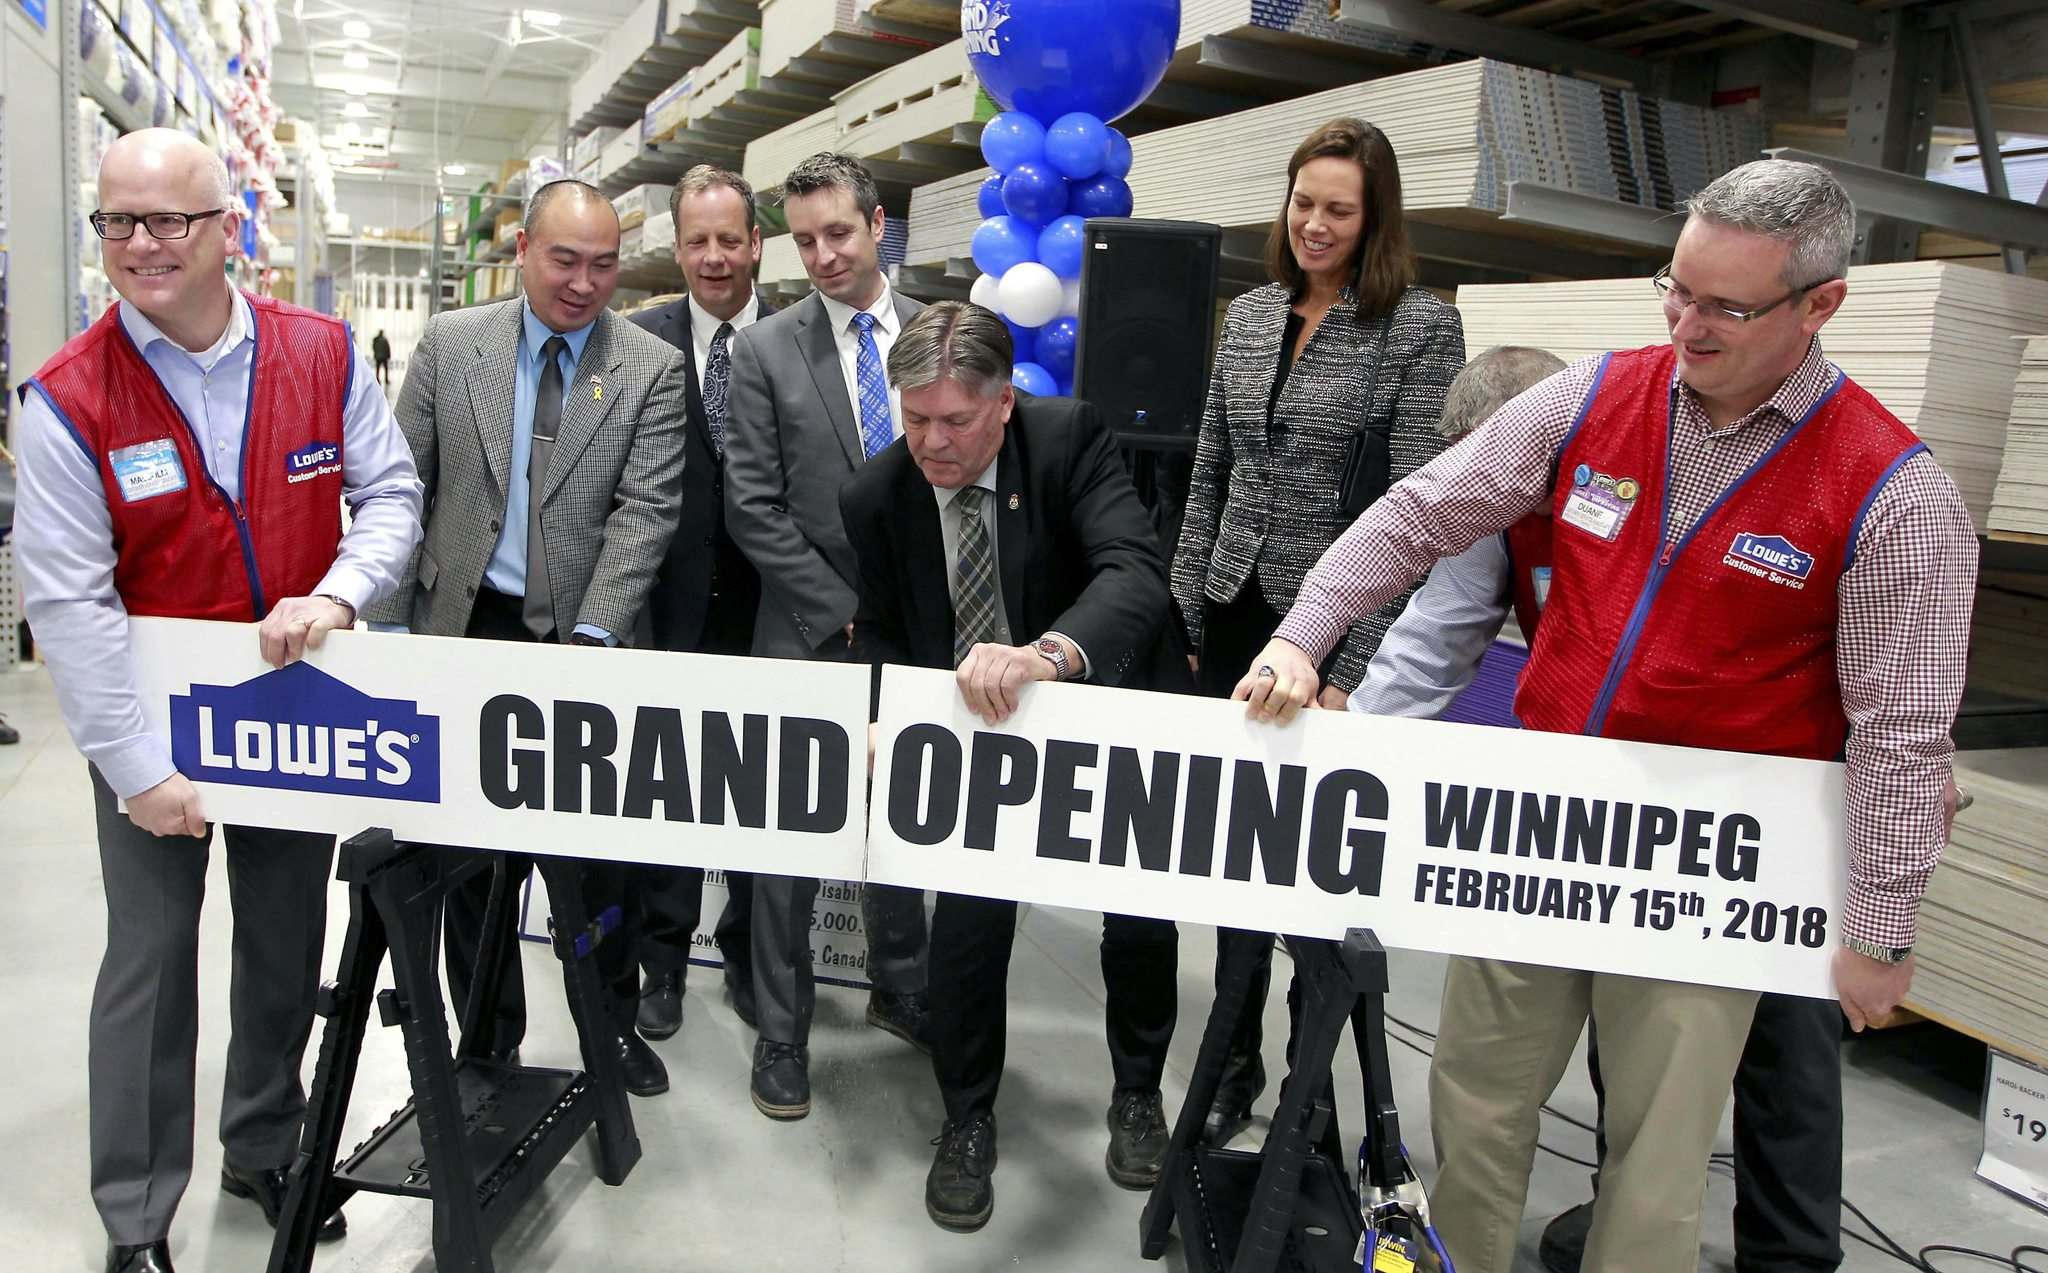 BORIS MINKEVICH / WINNIPEG FREE PRESS</p><p>Provincial Education Minister Ian Wishart (centre) performs the ceremonial board-cutting with VIPs and local politicians at the new Lowe's, located in the Linden Ridge Shopping Centre.</p>